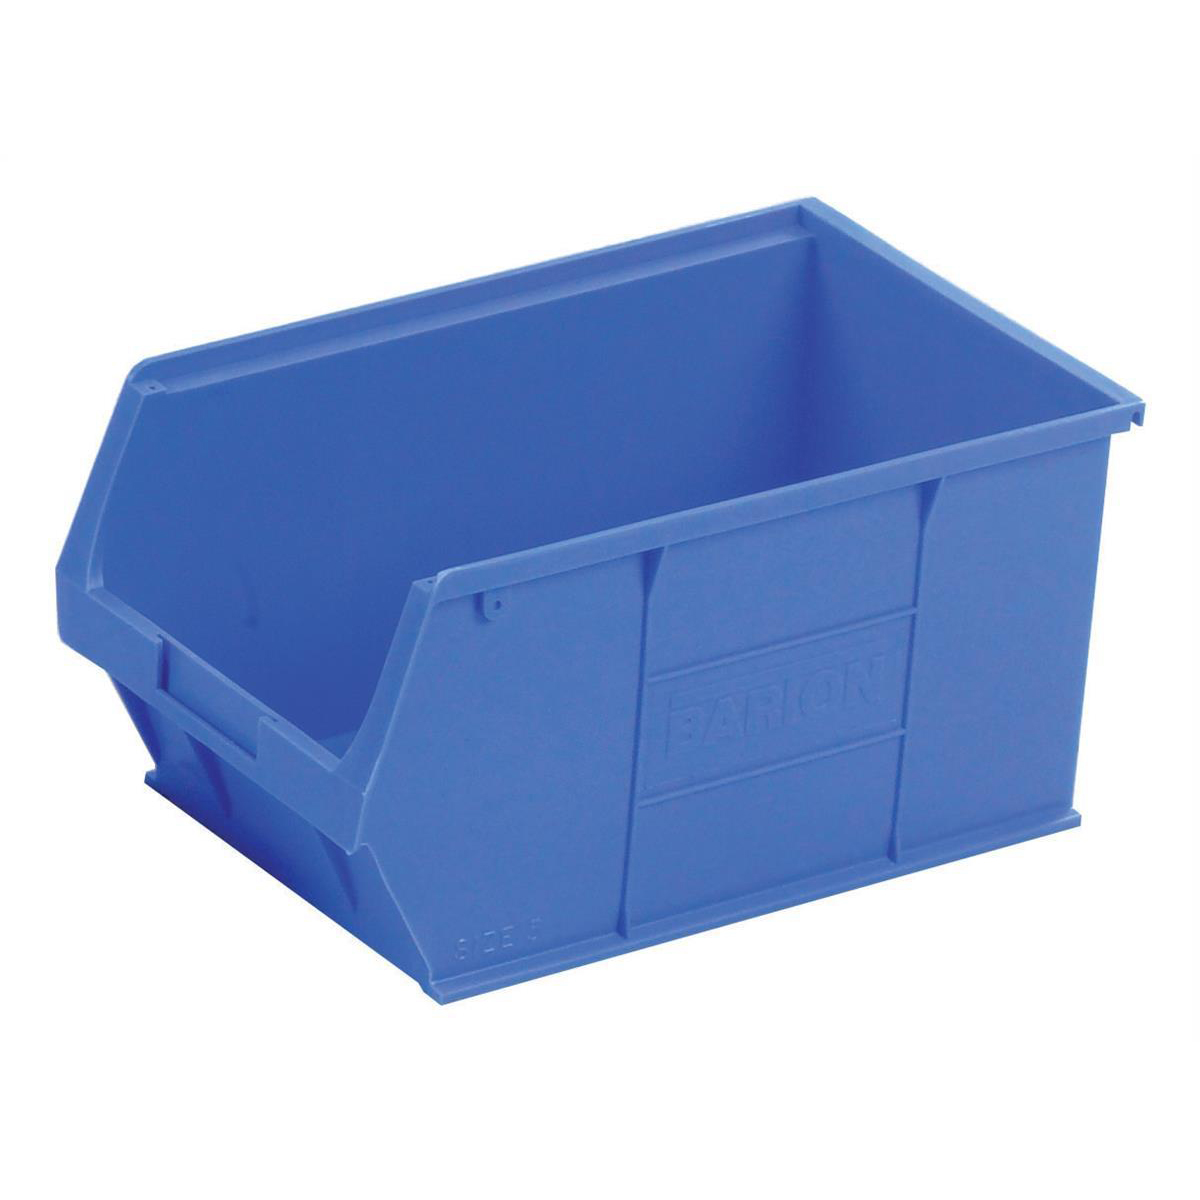 Containers Container Bin Heavy Duty Polypropylene W350xD205xH182mm Blue [Pack 10]